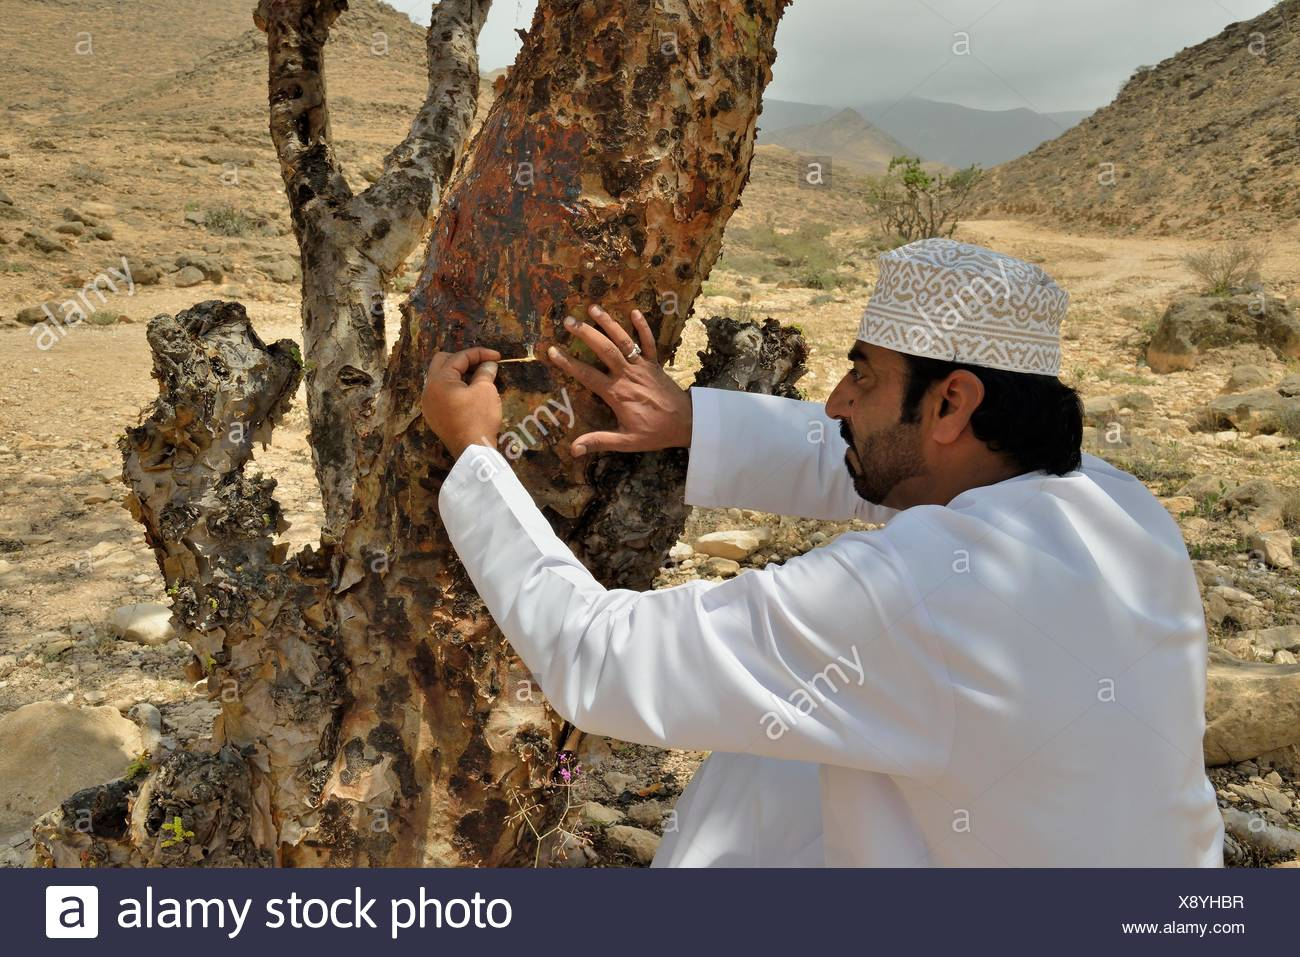 Local man harvesting the precious resin of an Frankincense Tree (Boswellia sacra), near Mughsayl, Dhofar Region, Orient, Oman Stock Photo